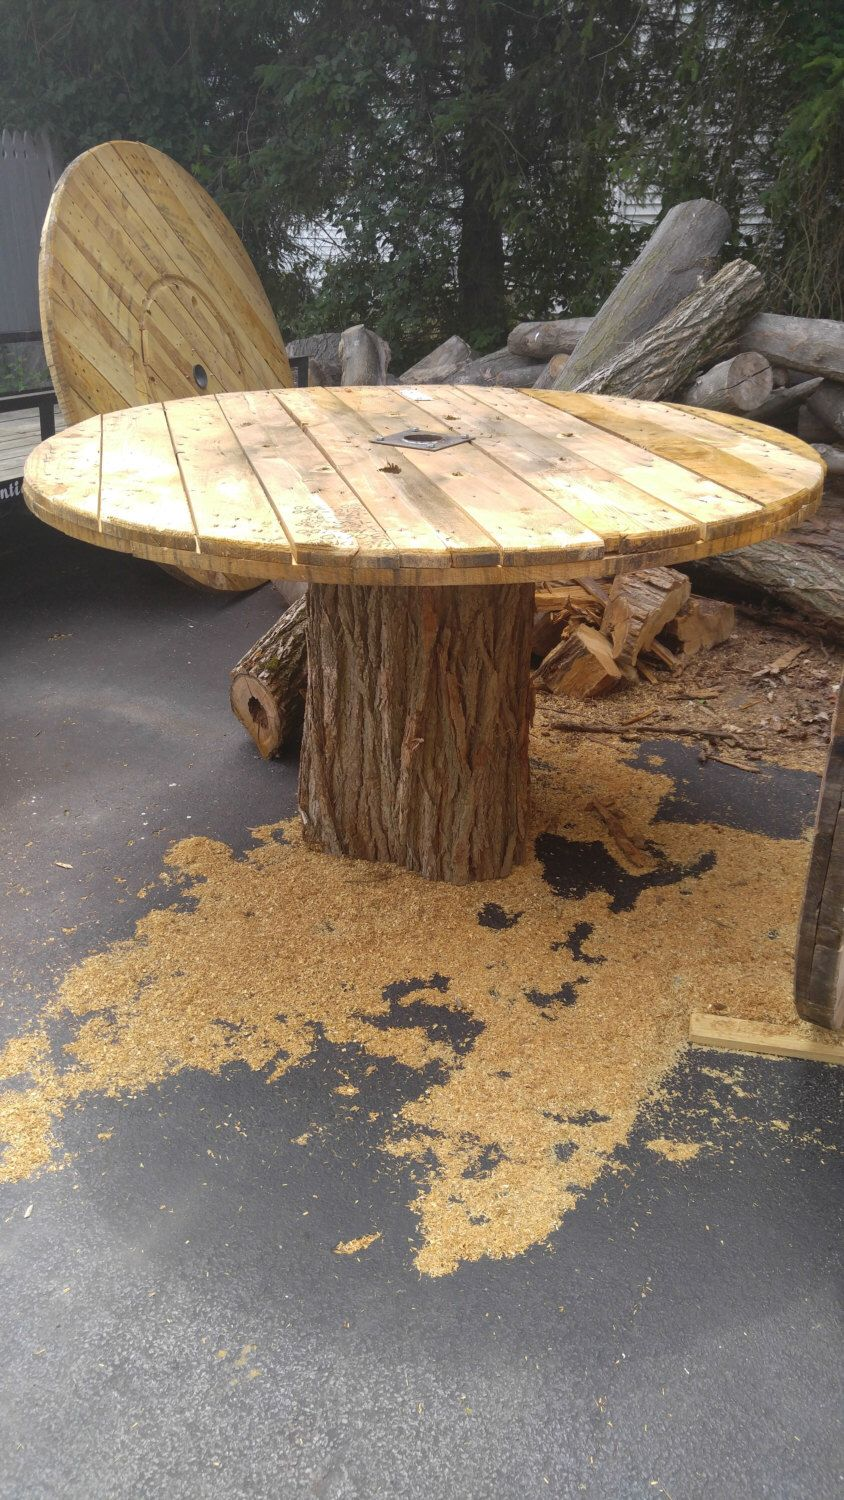 Items similar to Up-cycled cable spool tables made to your choosing on Etsy #cablespooltables